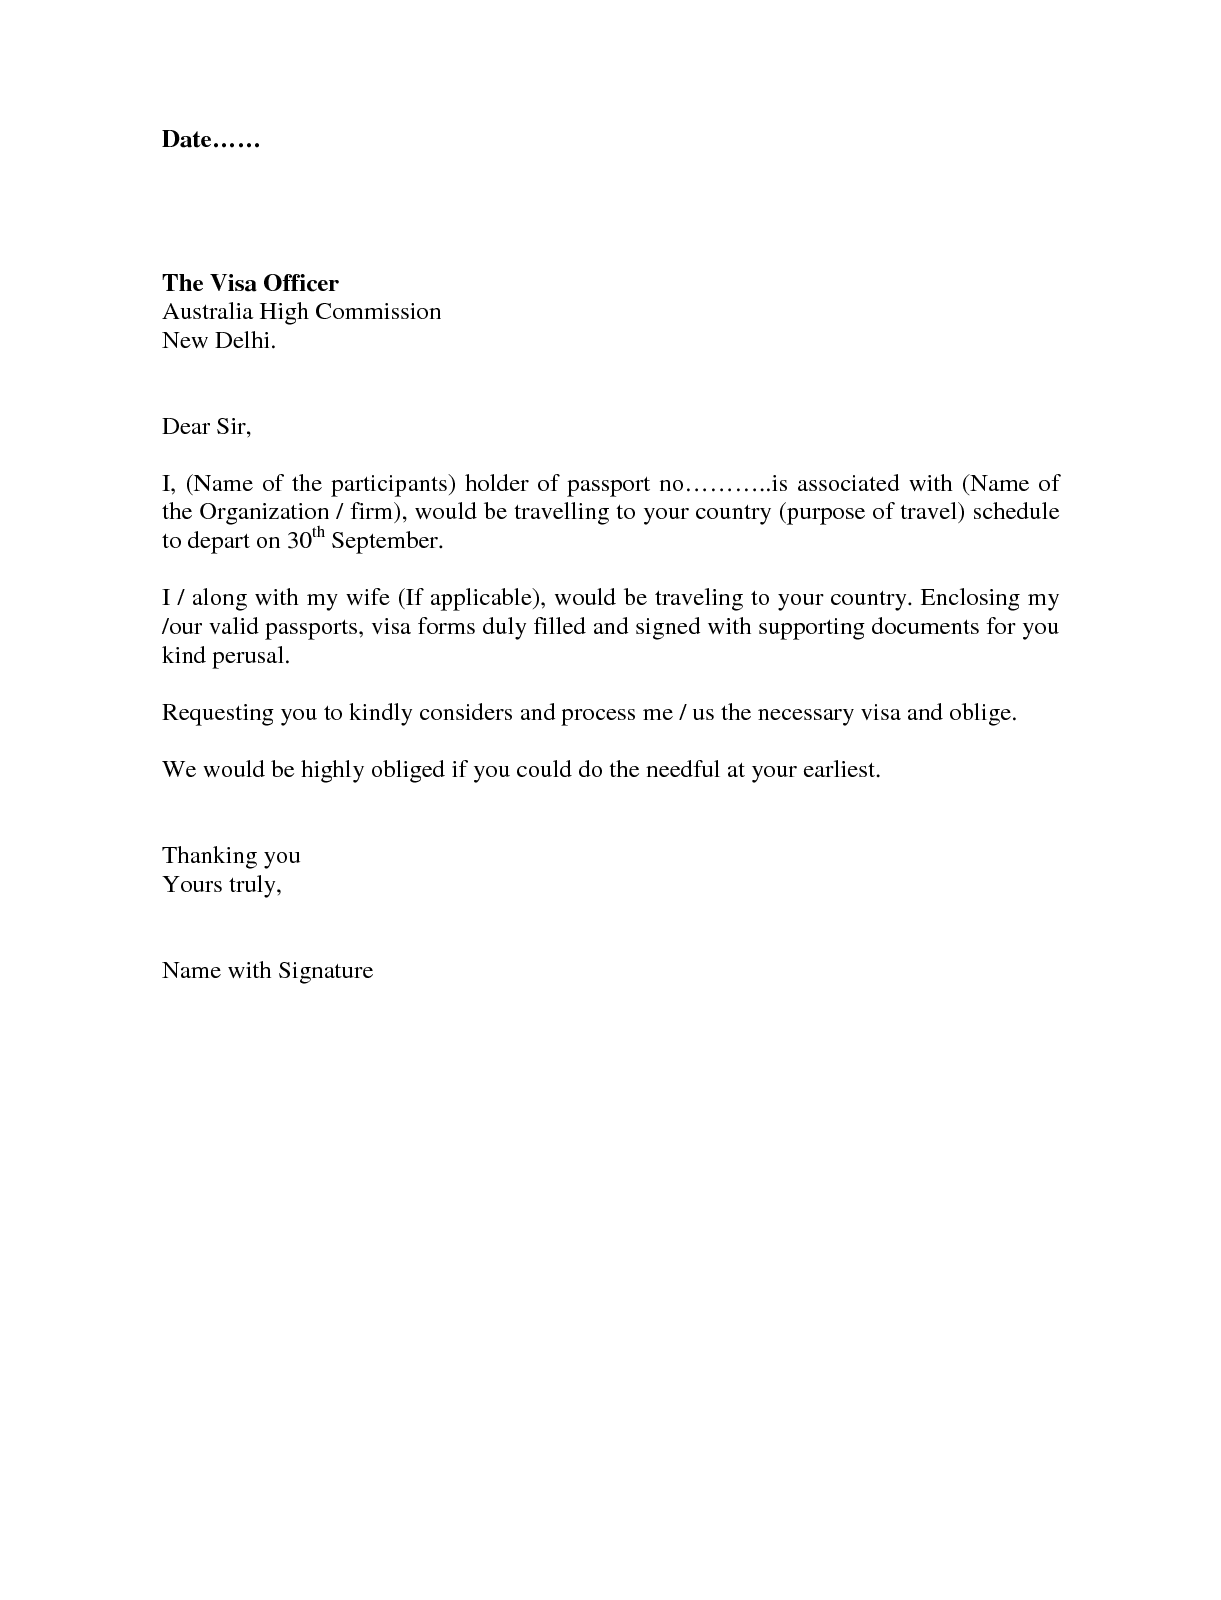 Recommendation Letter For Visa Application Extraordinary Ability Reference Letter